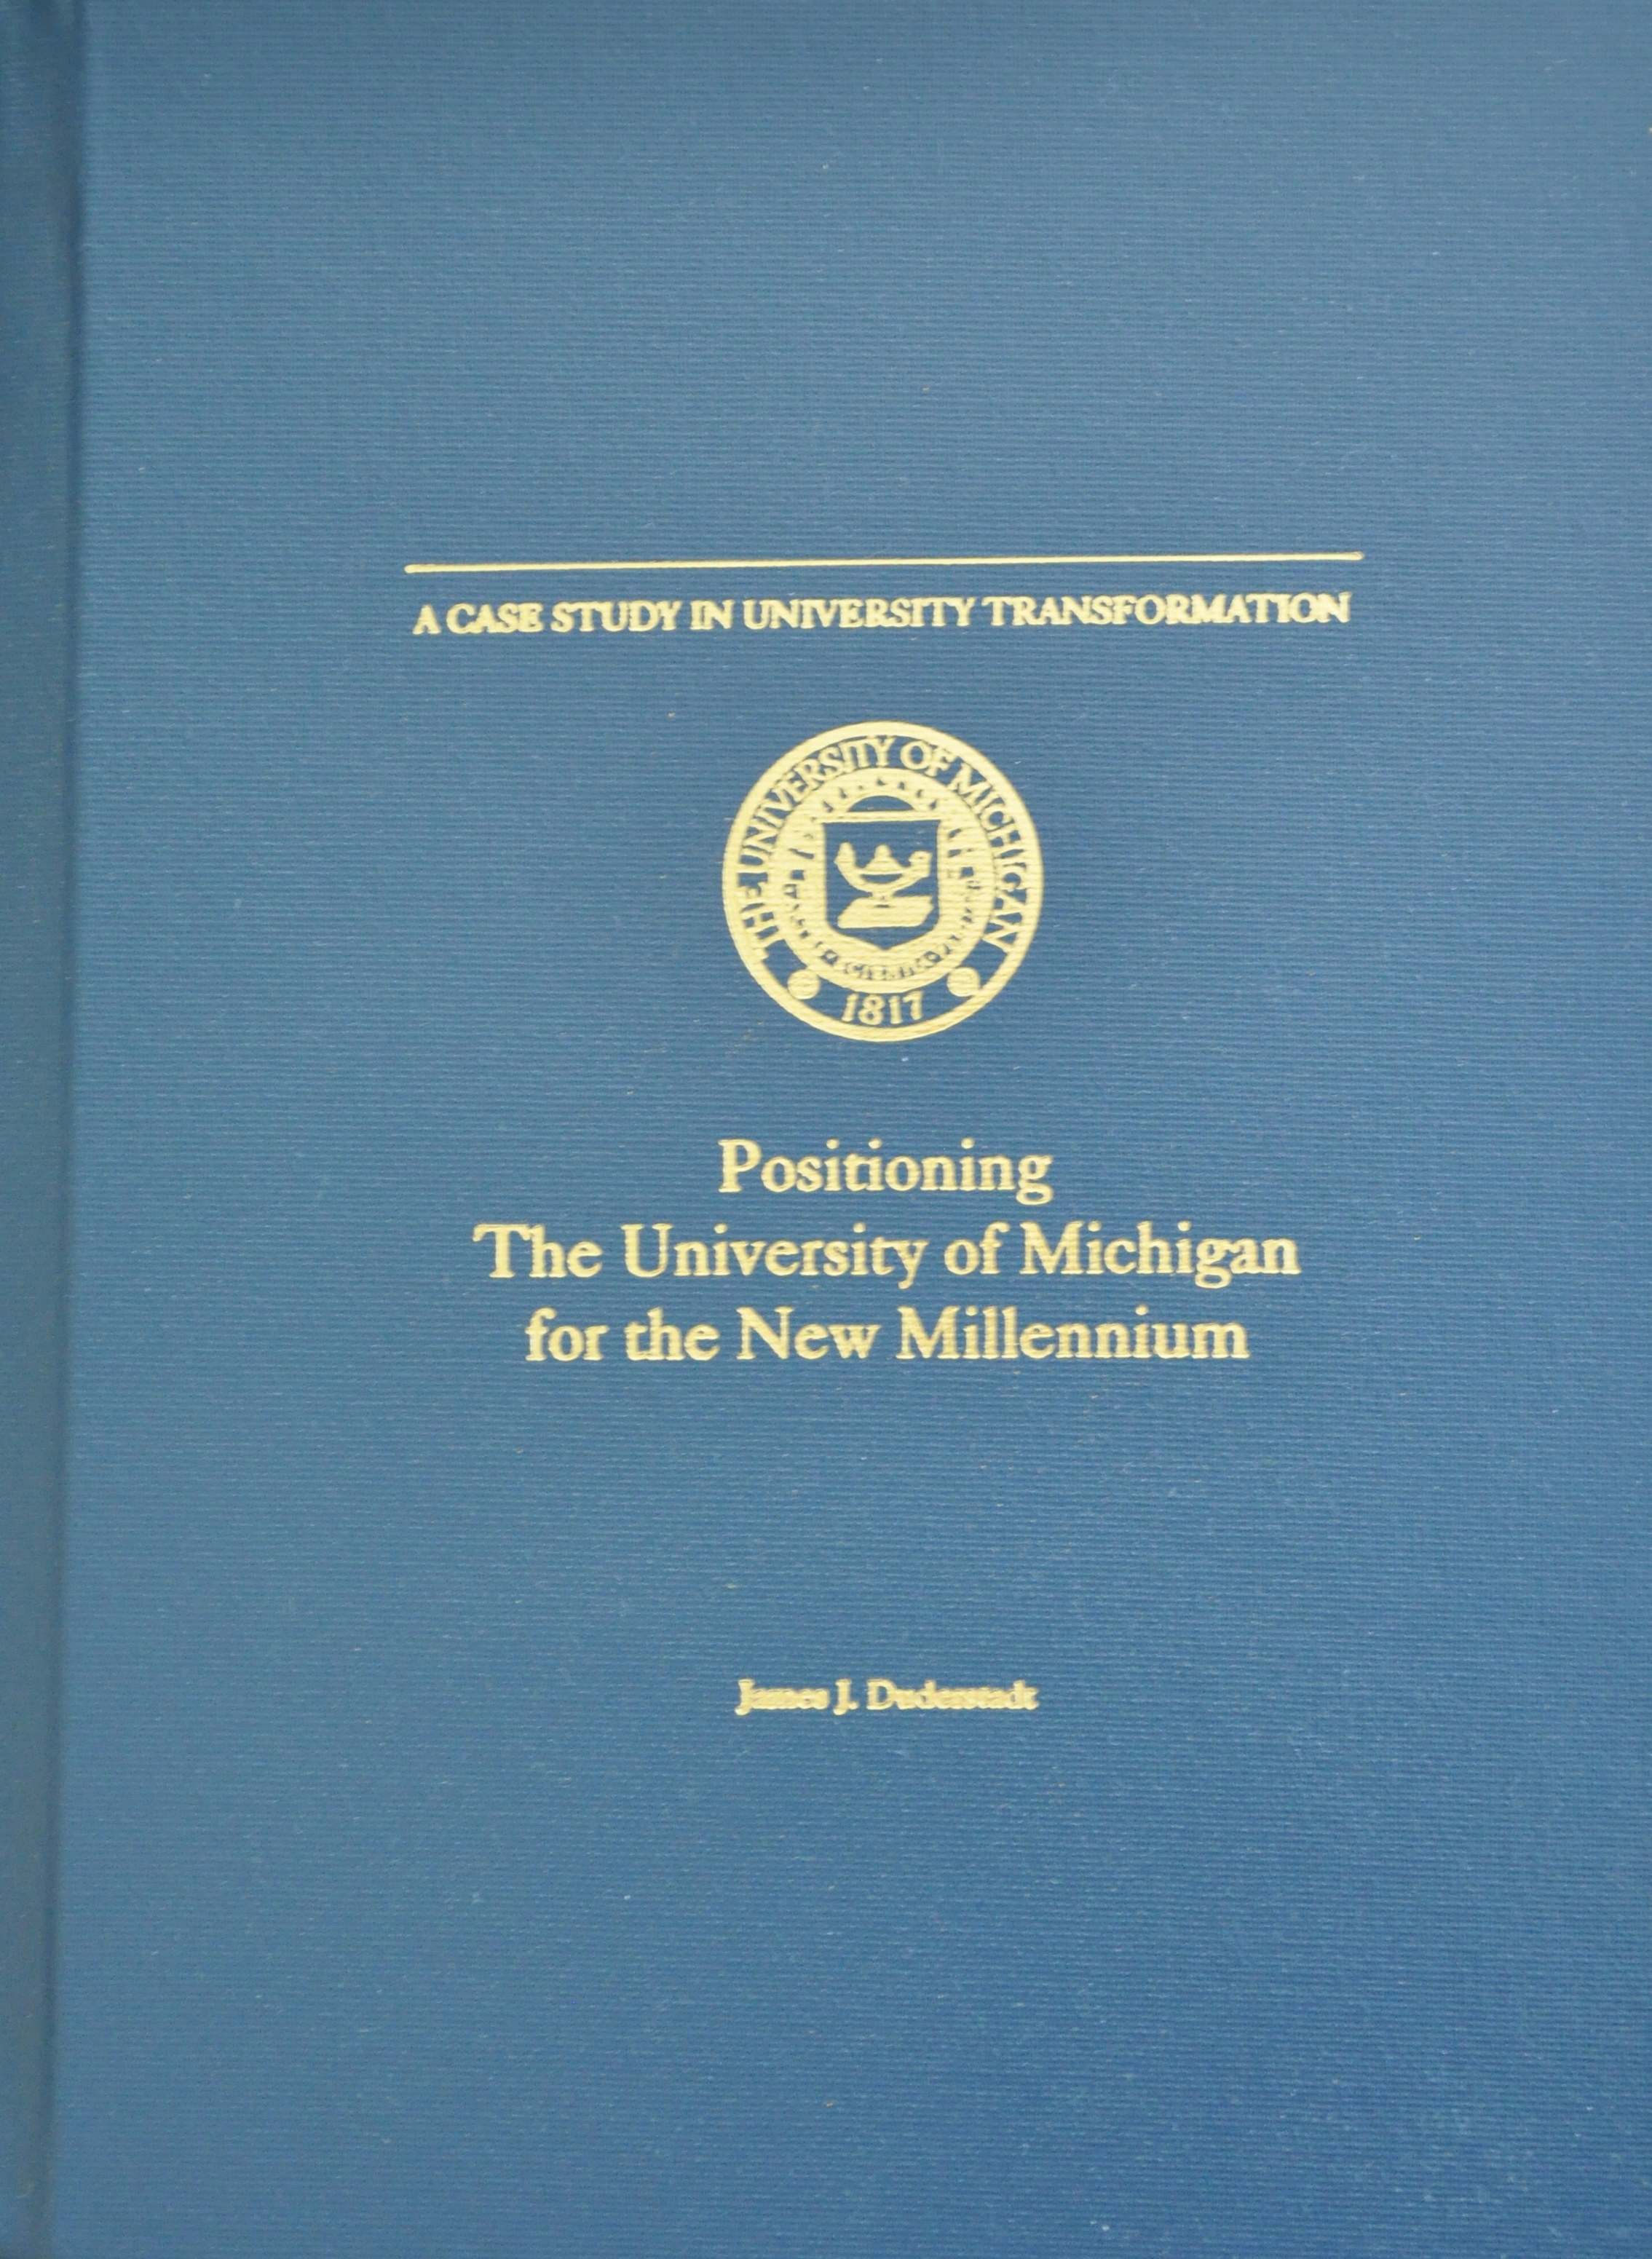 Positioning UM for Millennium Book cover